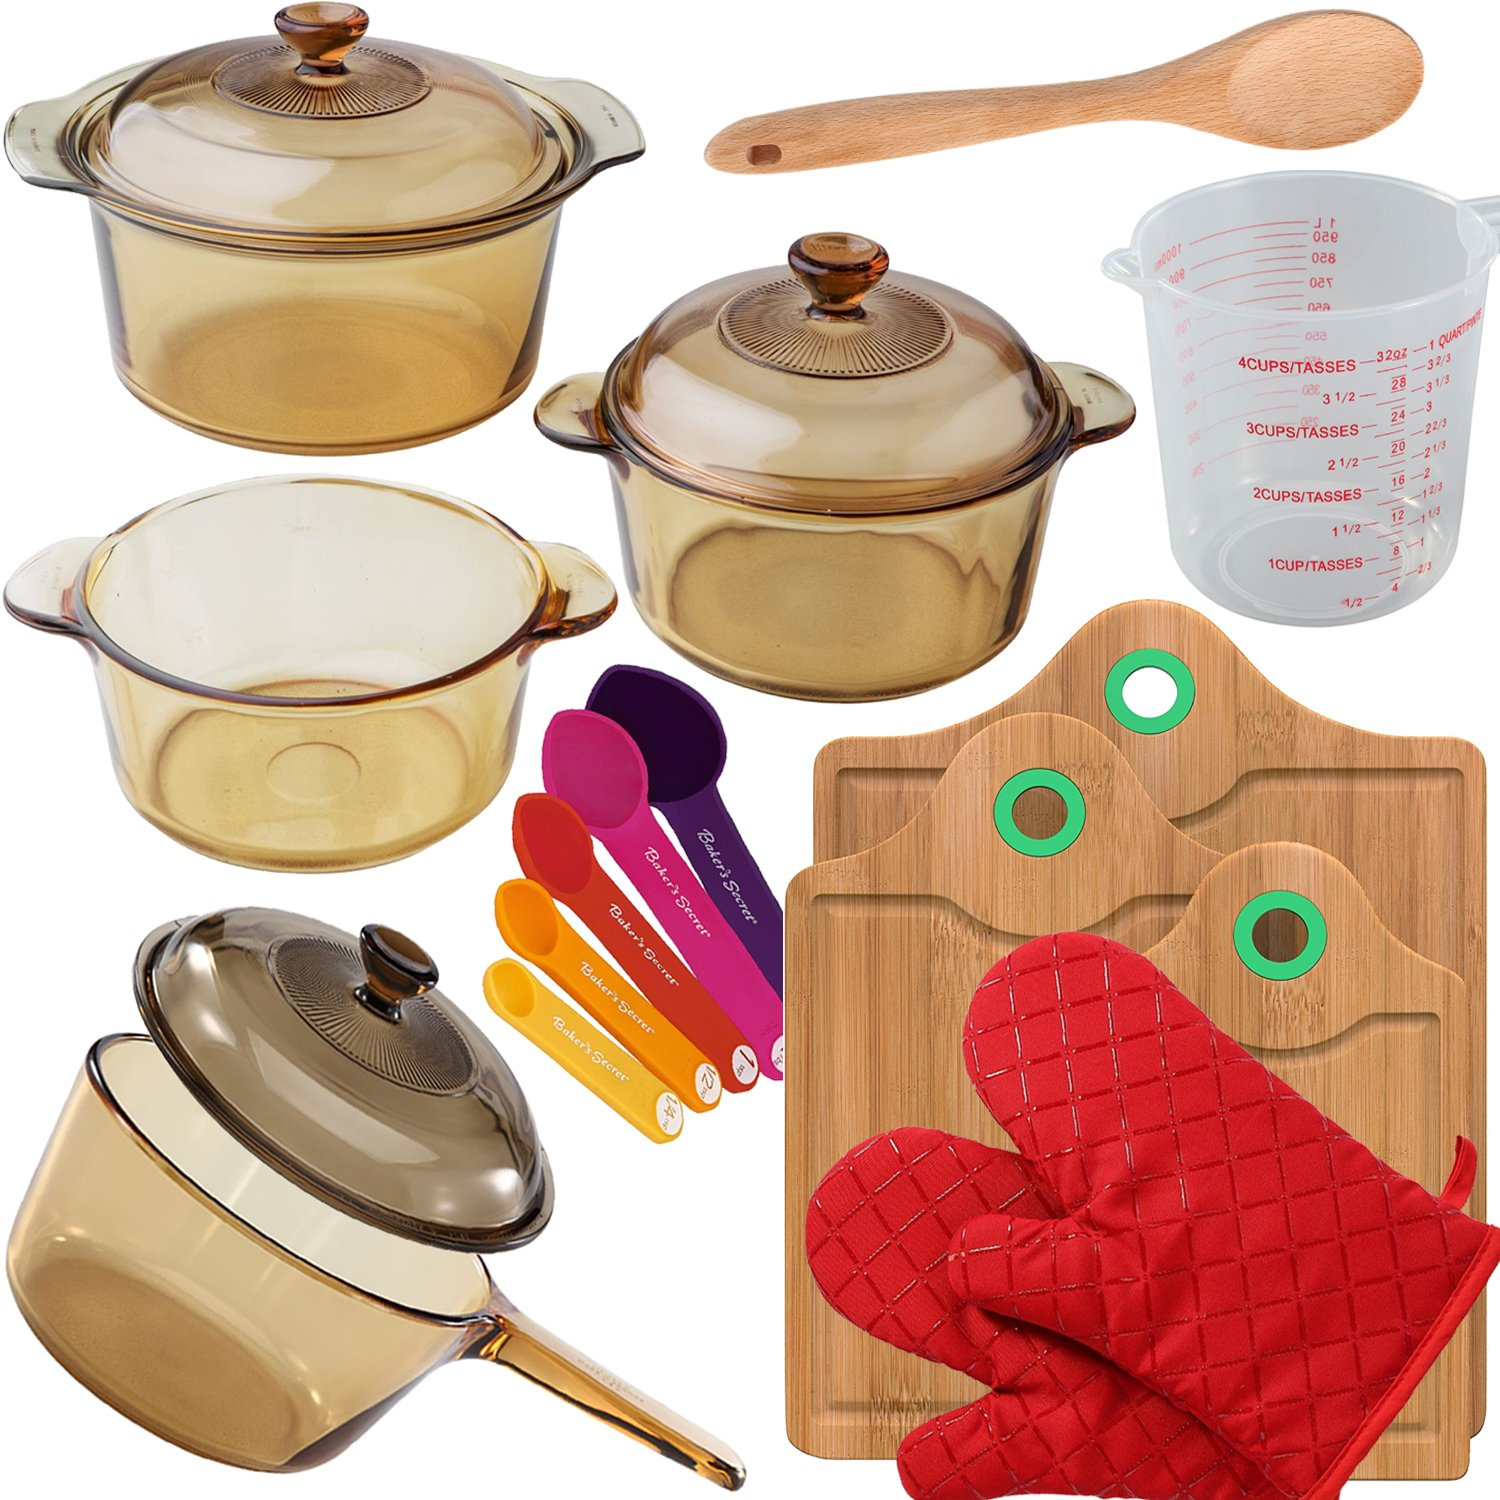 """VISIONS 7-pc Glass Cookware Set, 3-pc Bamboo Cutting Board Set, 1 Pair Cooking Gloves And Baker's Secret Set: Measuring Cup, 12"""" Wood Spoon And 5-pc Measuring Spoon Set"""